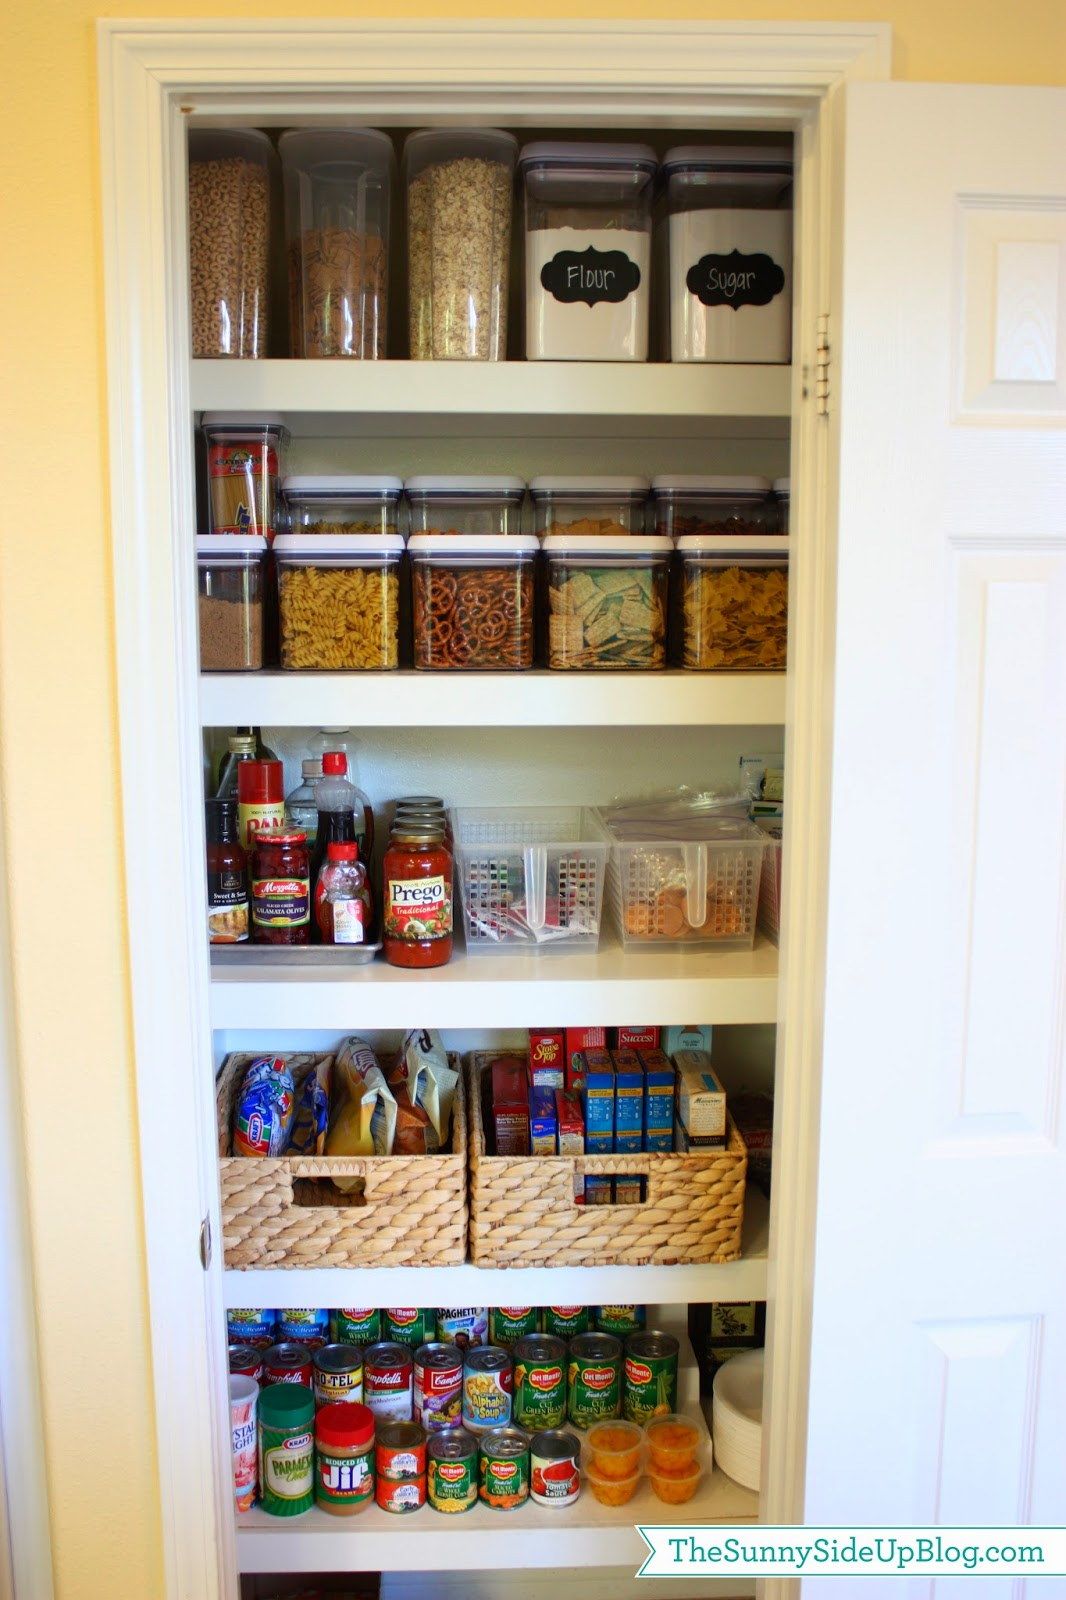 10 Small Pantry Ideas For An Organized Space Savvy Kitchen: The Sunny Side Up Blog